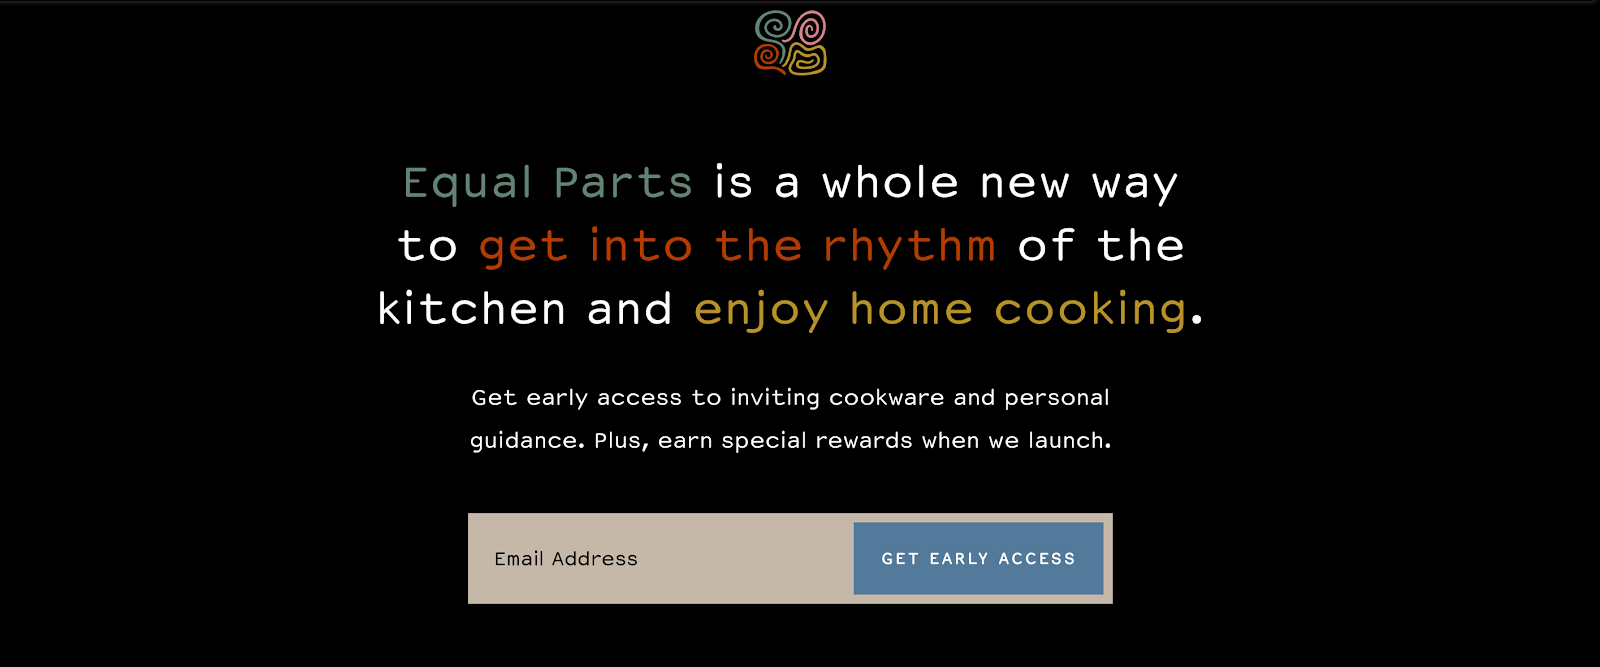 Coming Soon Page: Screenshot of Equal Parts coming soon page